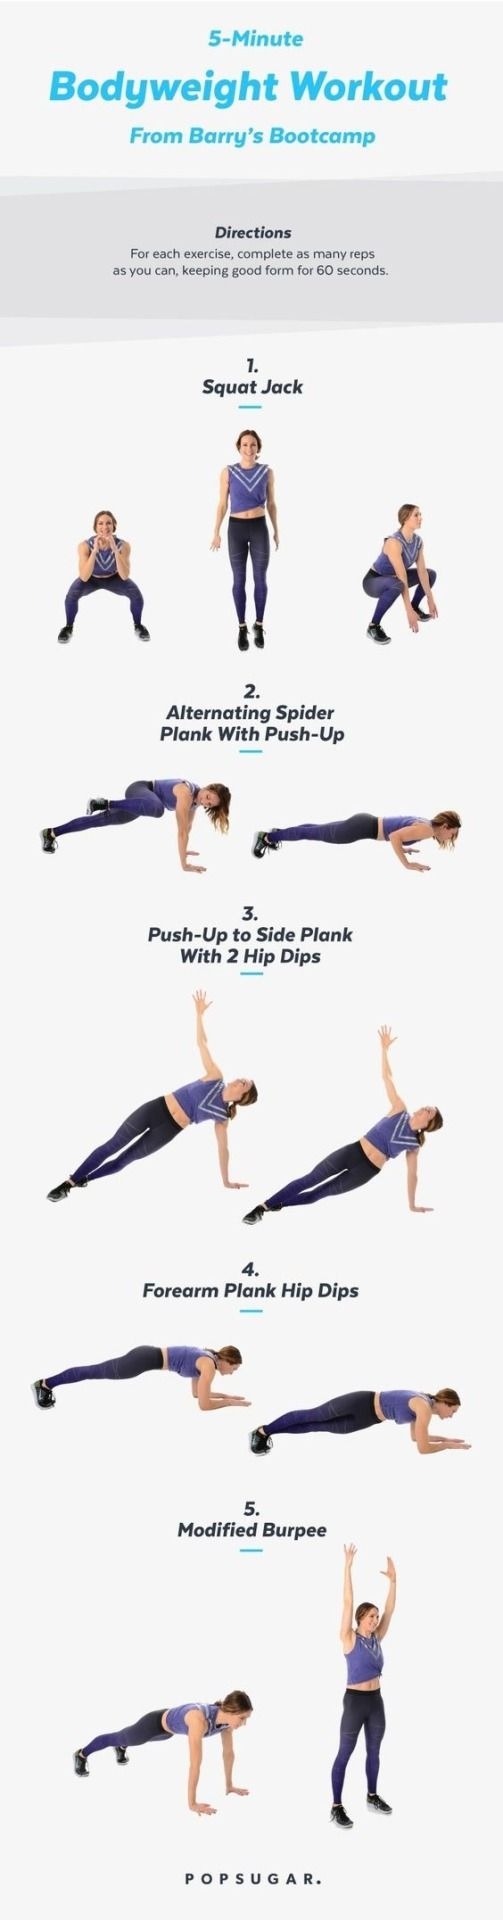 5 minute body weight workout